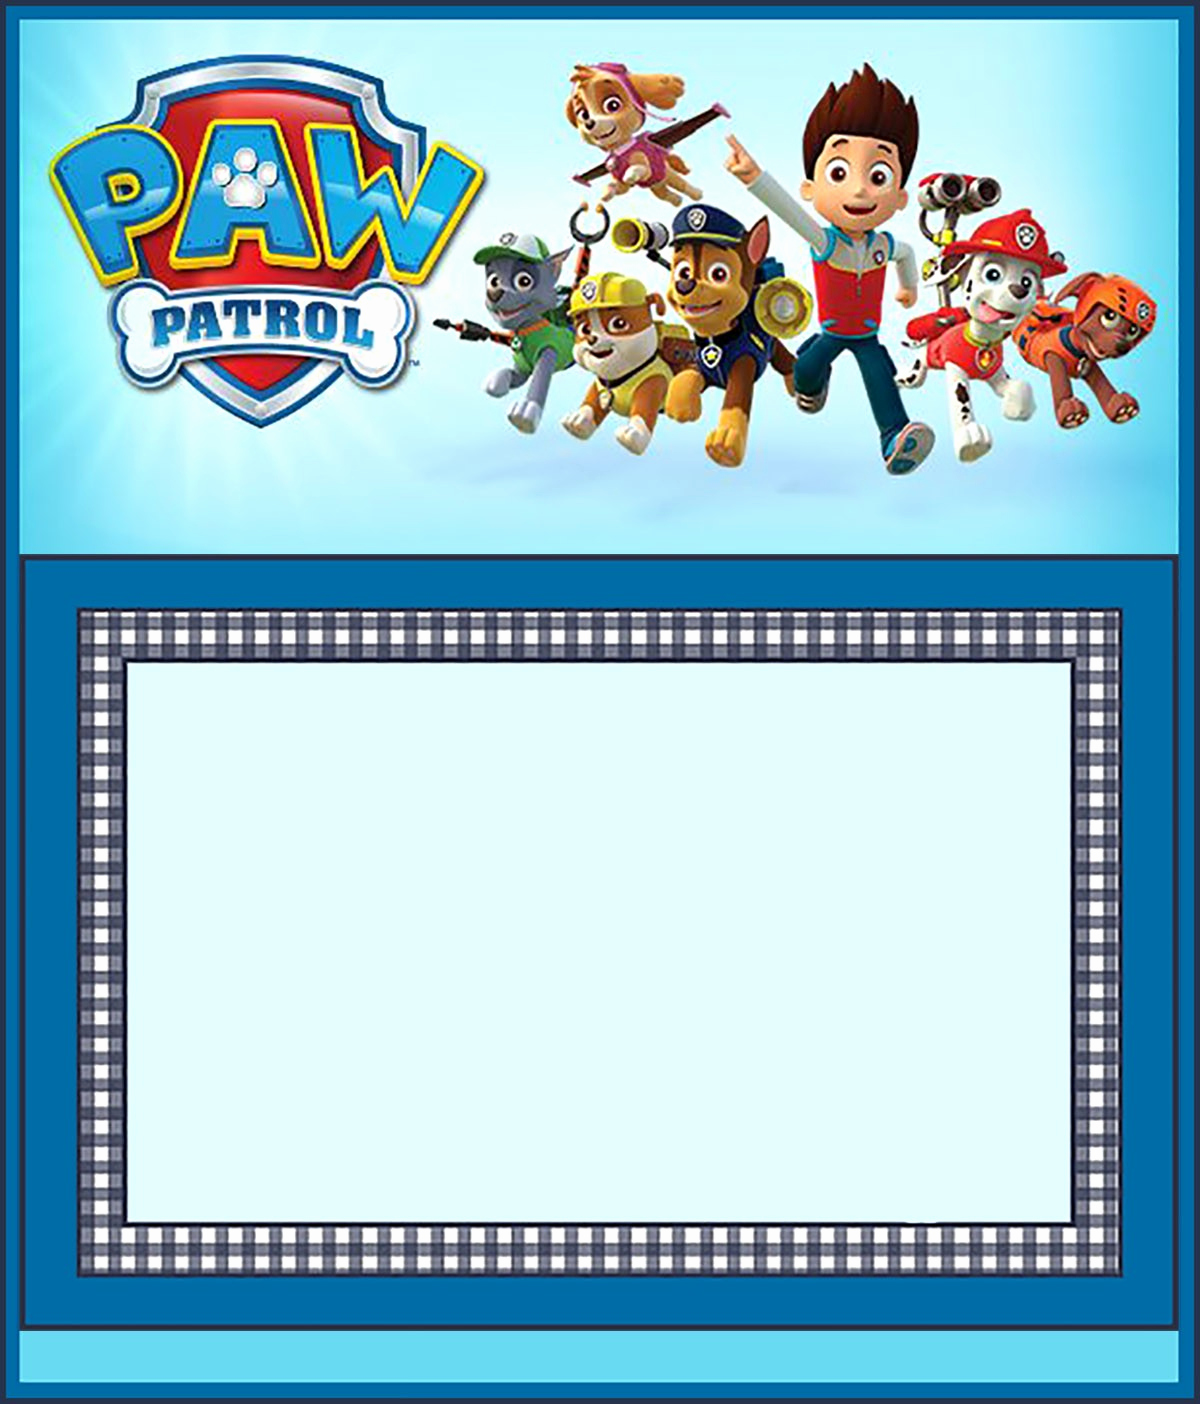 Paw Patrol Invitation Template Free Beautiful Make Printable Paw Patrol Invitations Using Free Templates